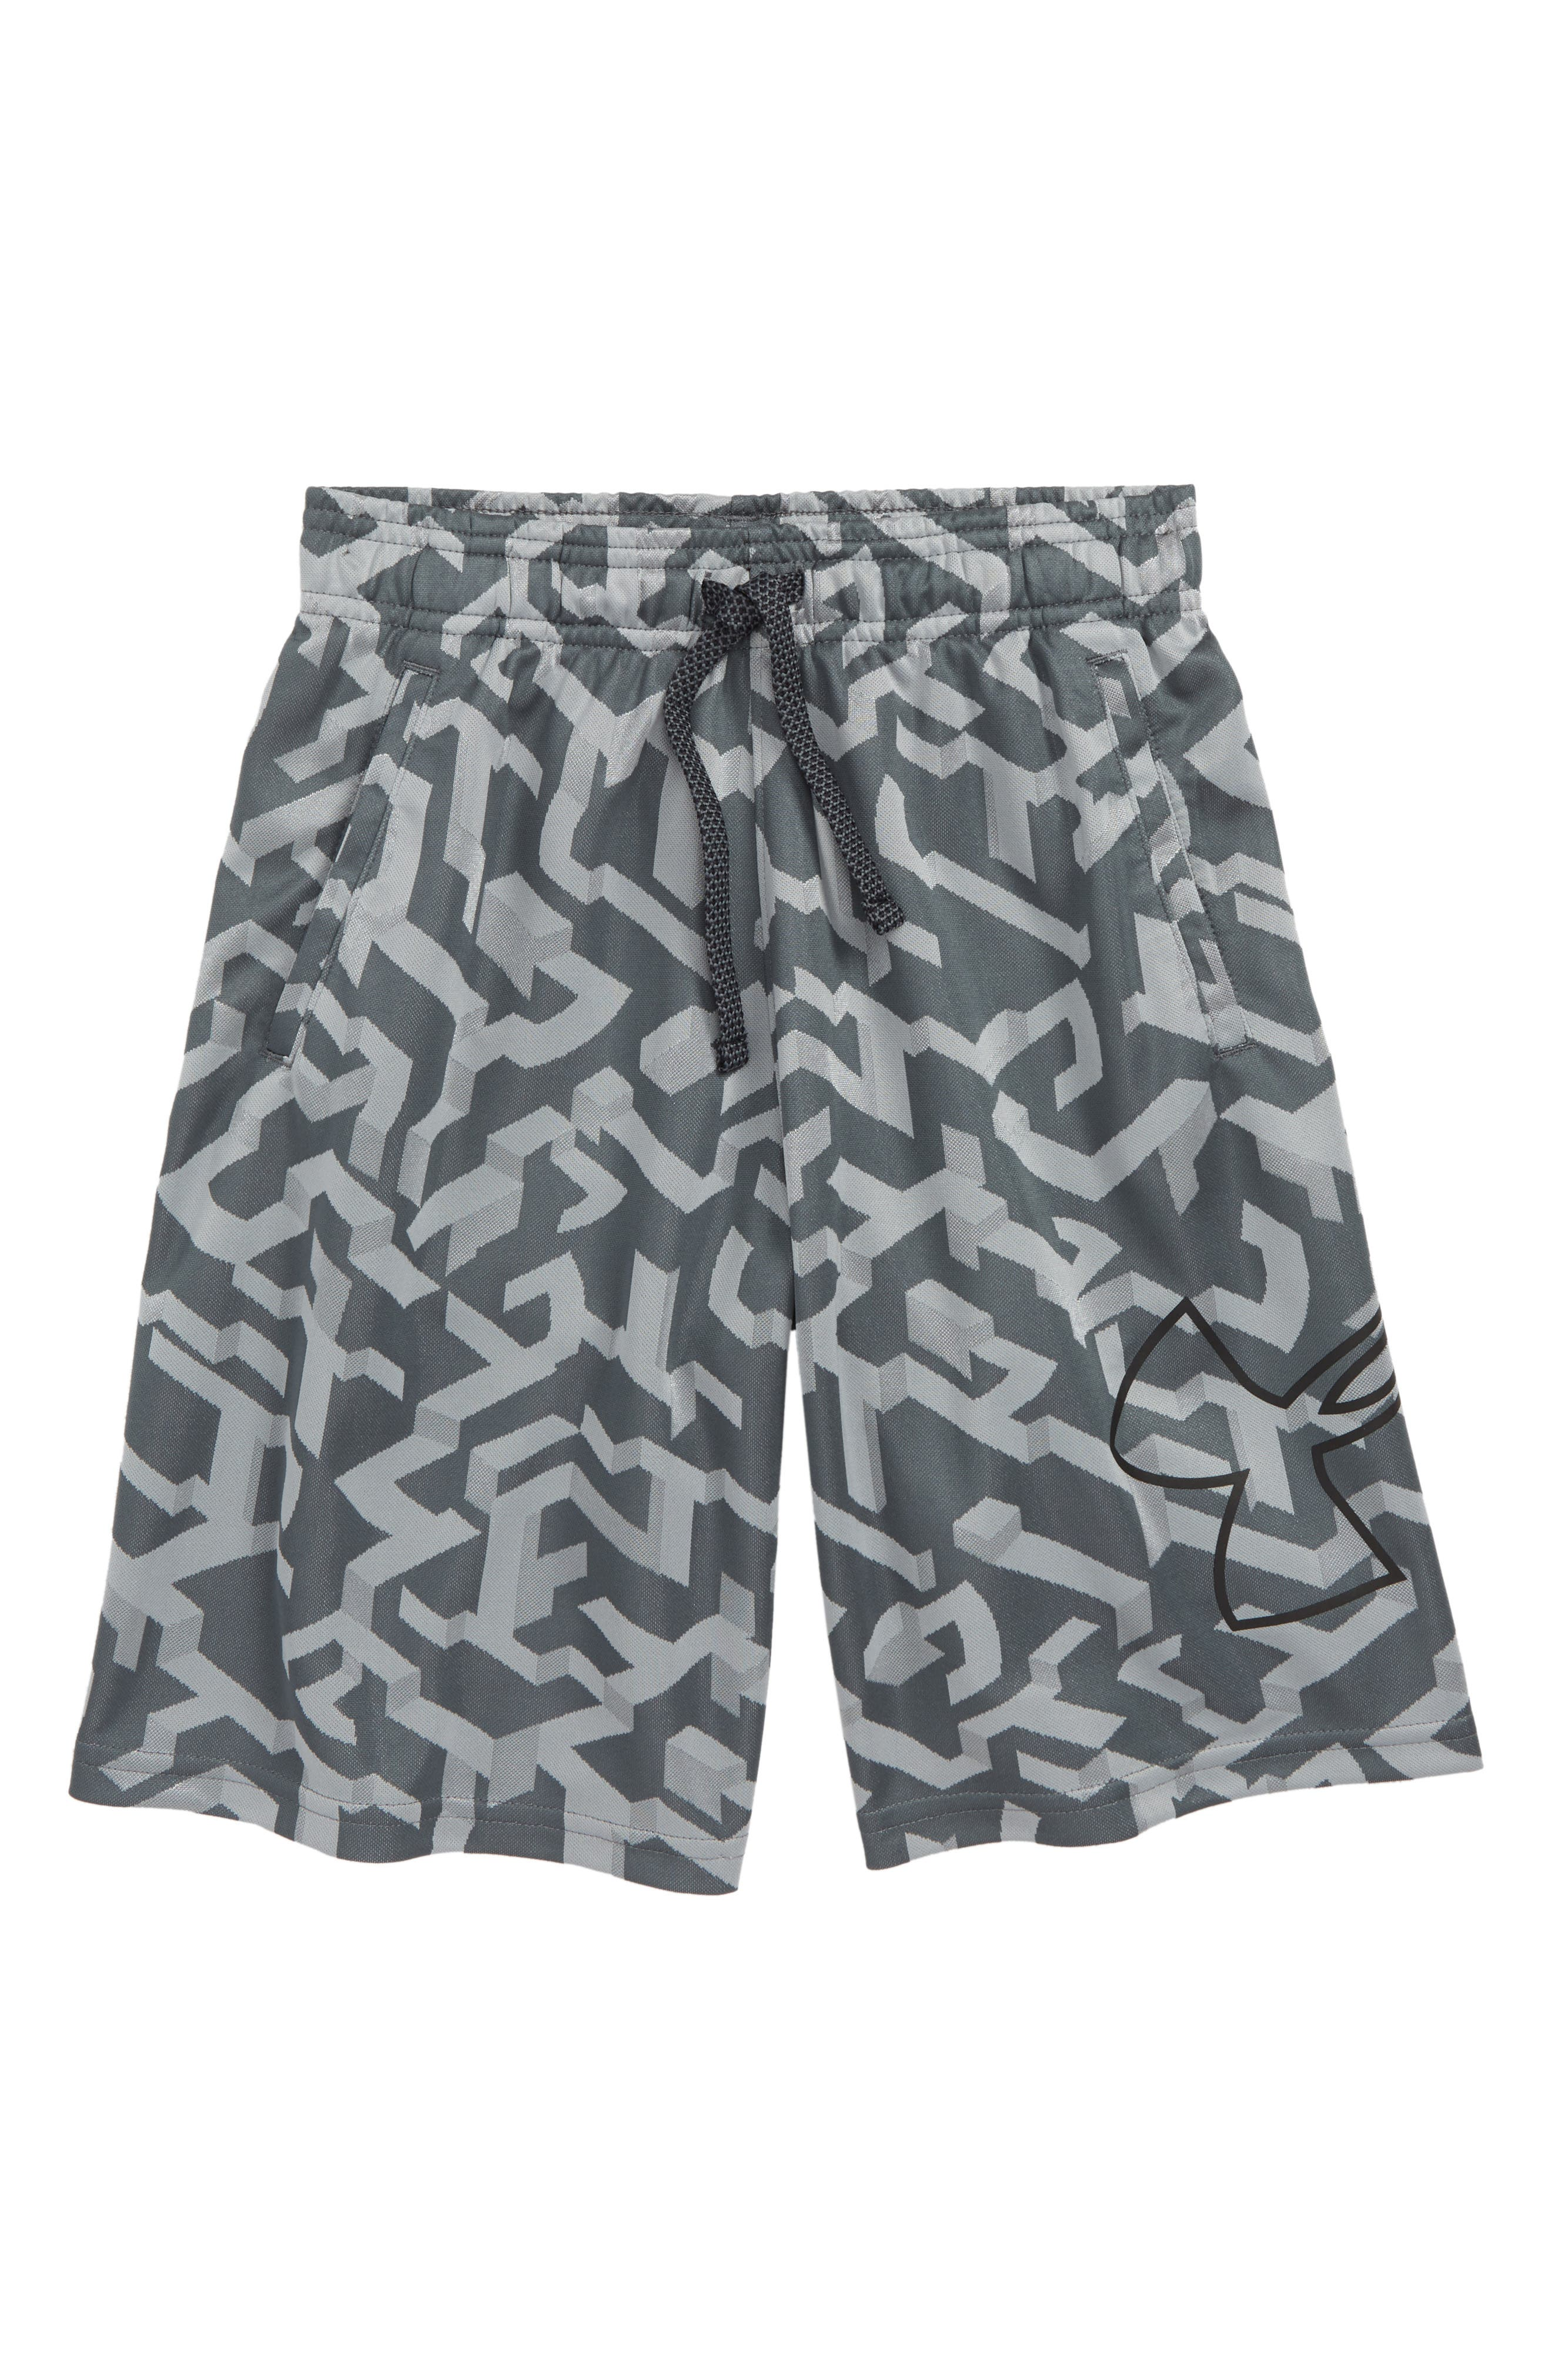 UNDER ARMOUR Renegade 2.0 Jacquard Shorts, Main, color, PITCH GRAY/ BLACK